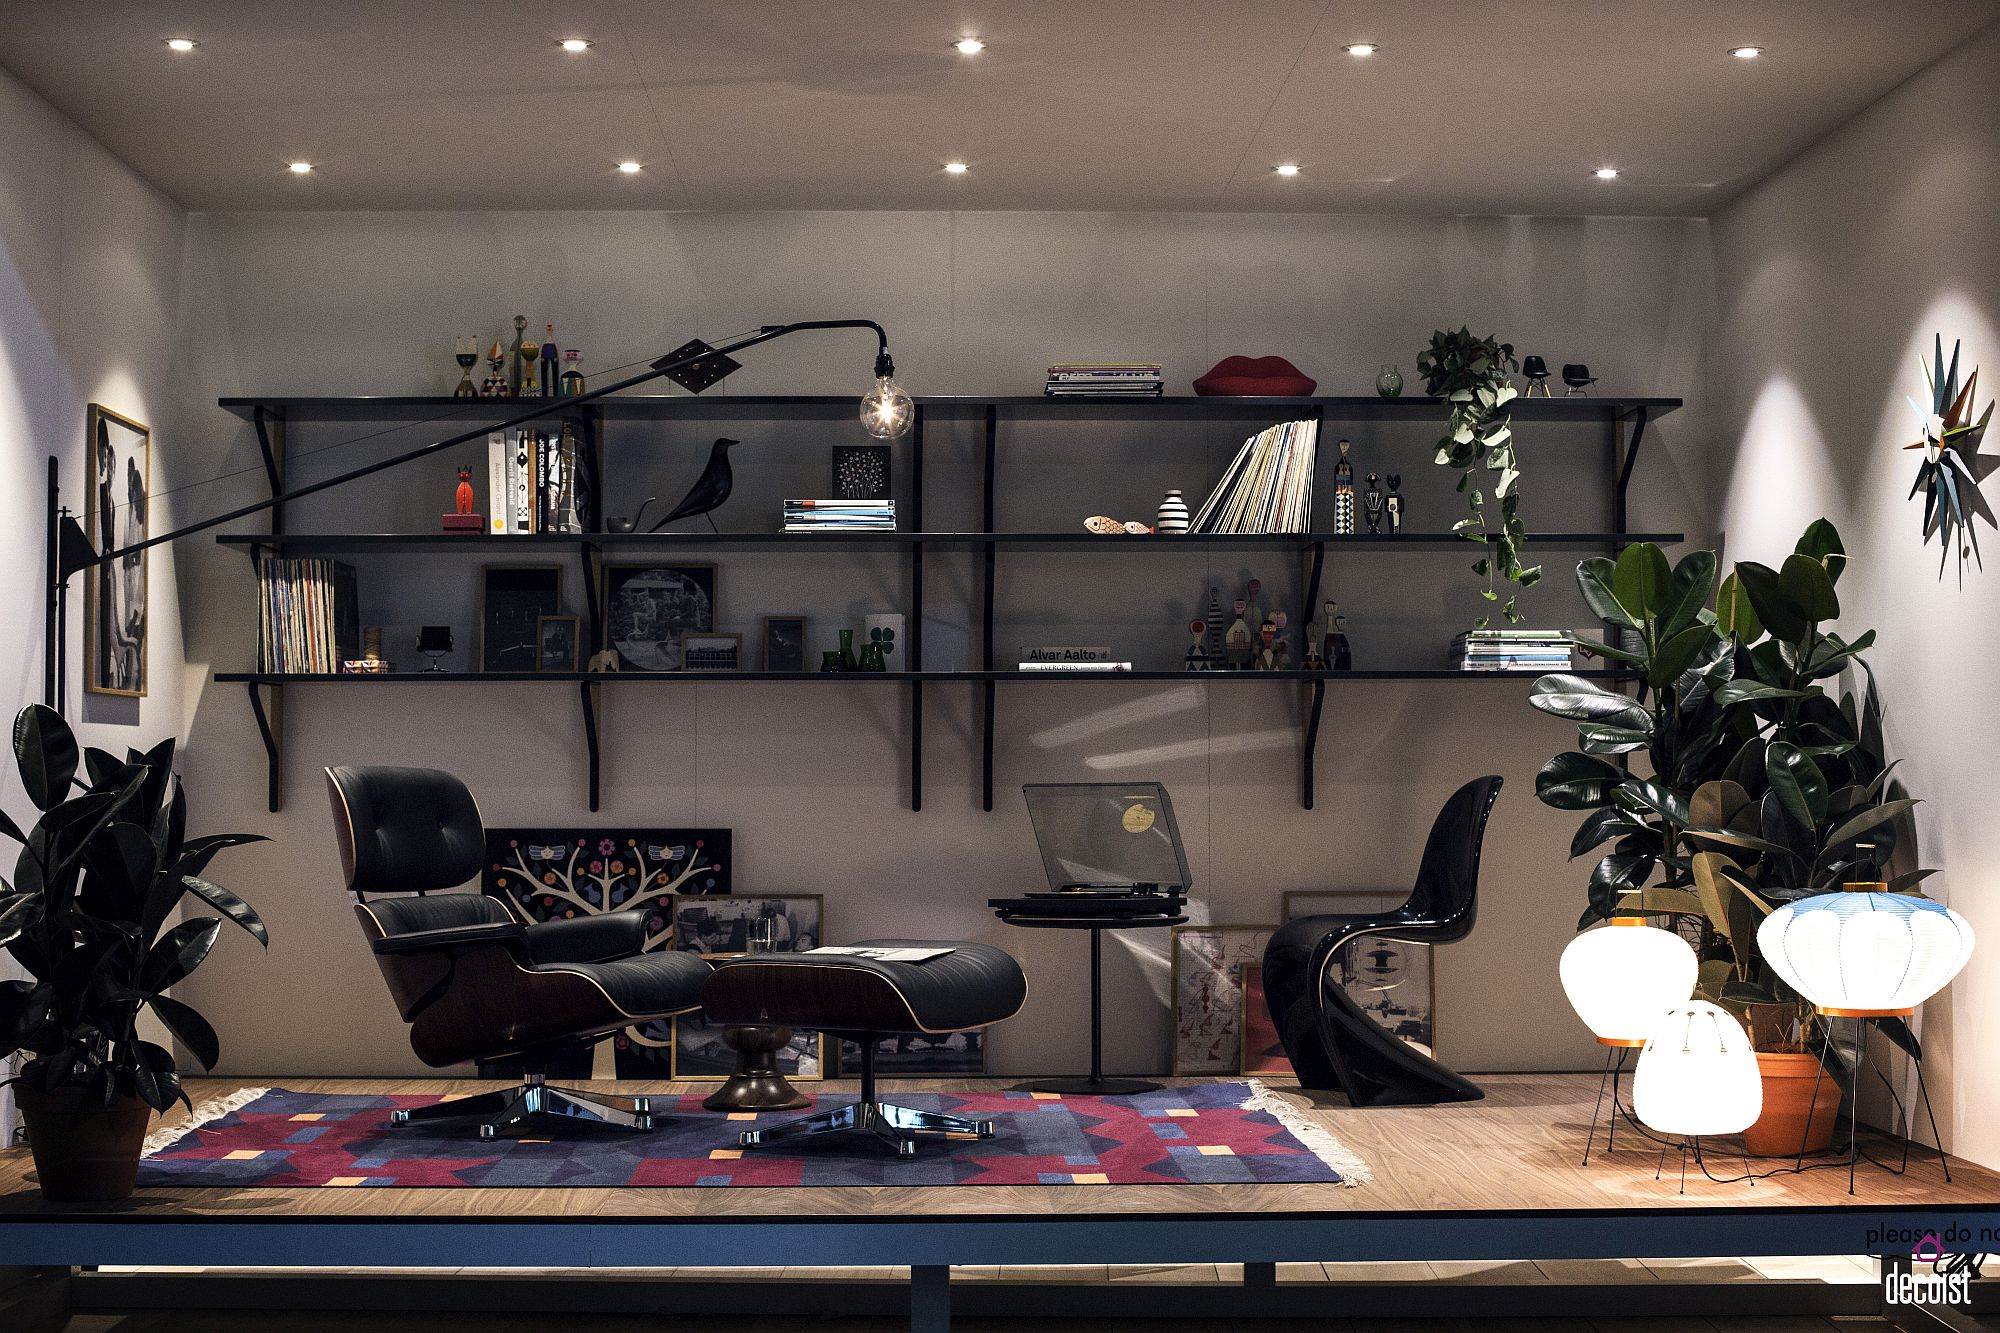 Innovative lighting coupled with Eames Lounger creates a comfy reading nook in the home office